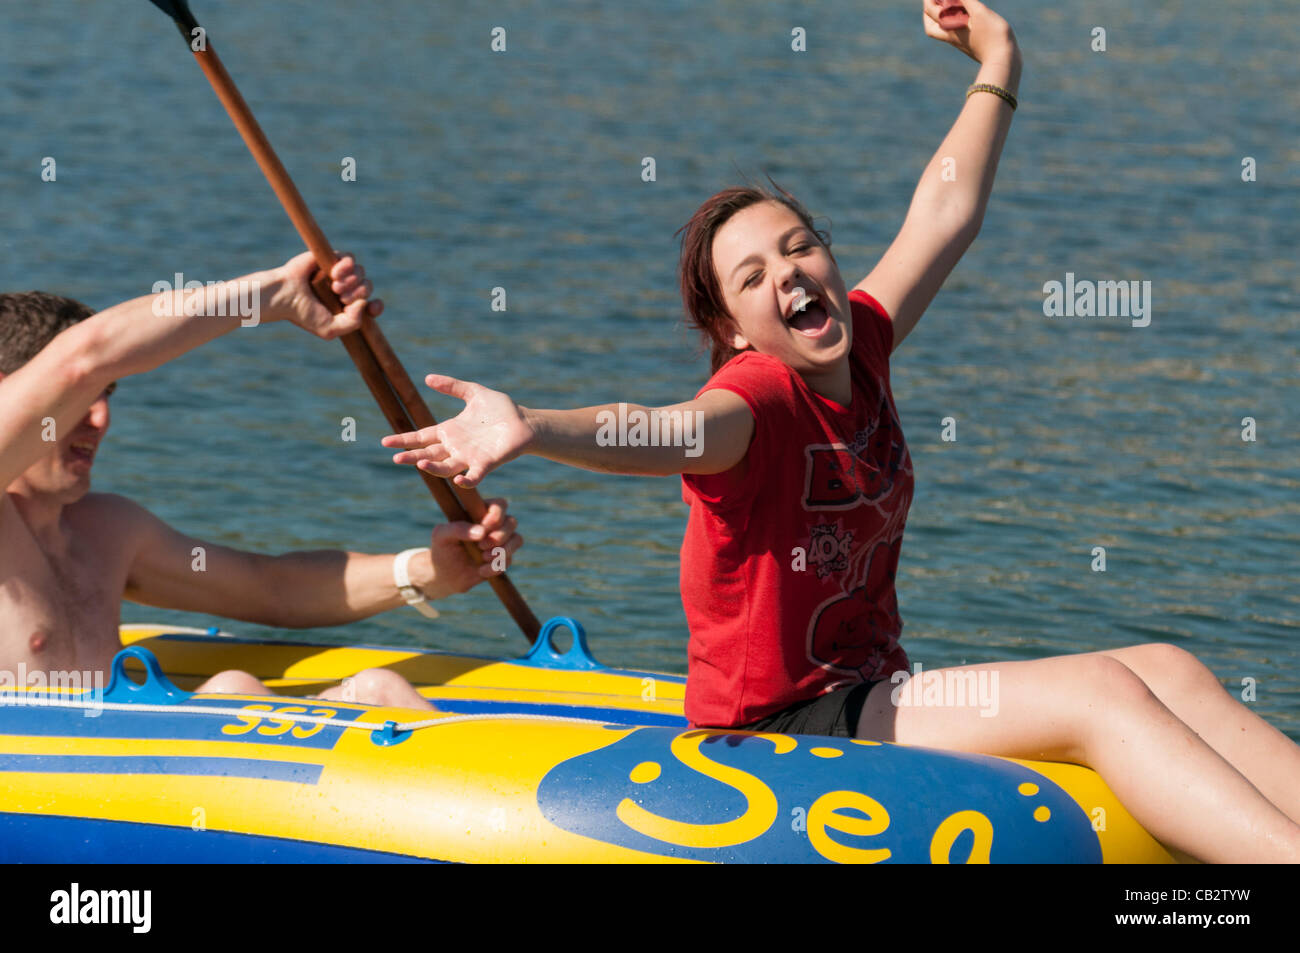 May 26 2012:  As temperatures reach the high 20's celsius, young people enjoy the hot sunny weather in the sea - Stock Image